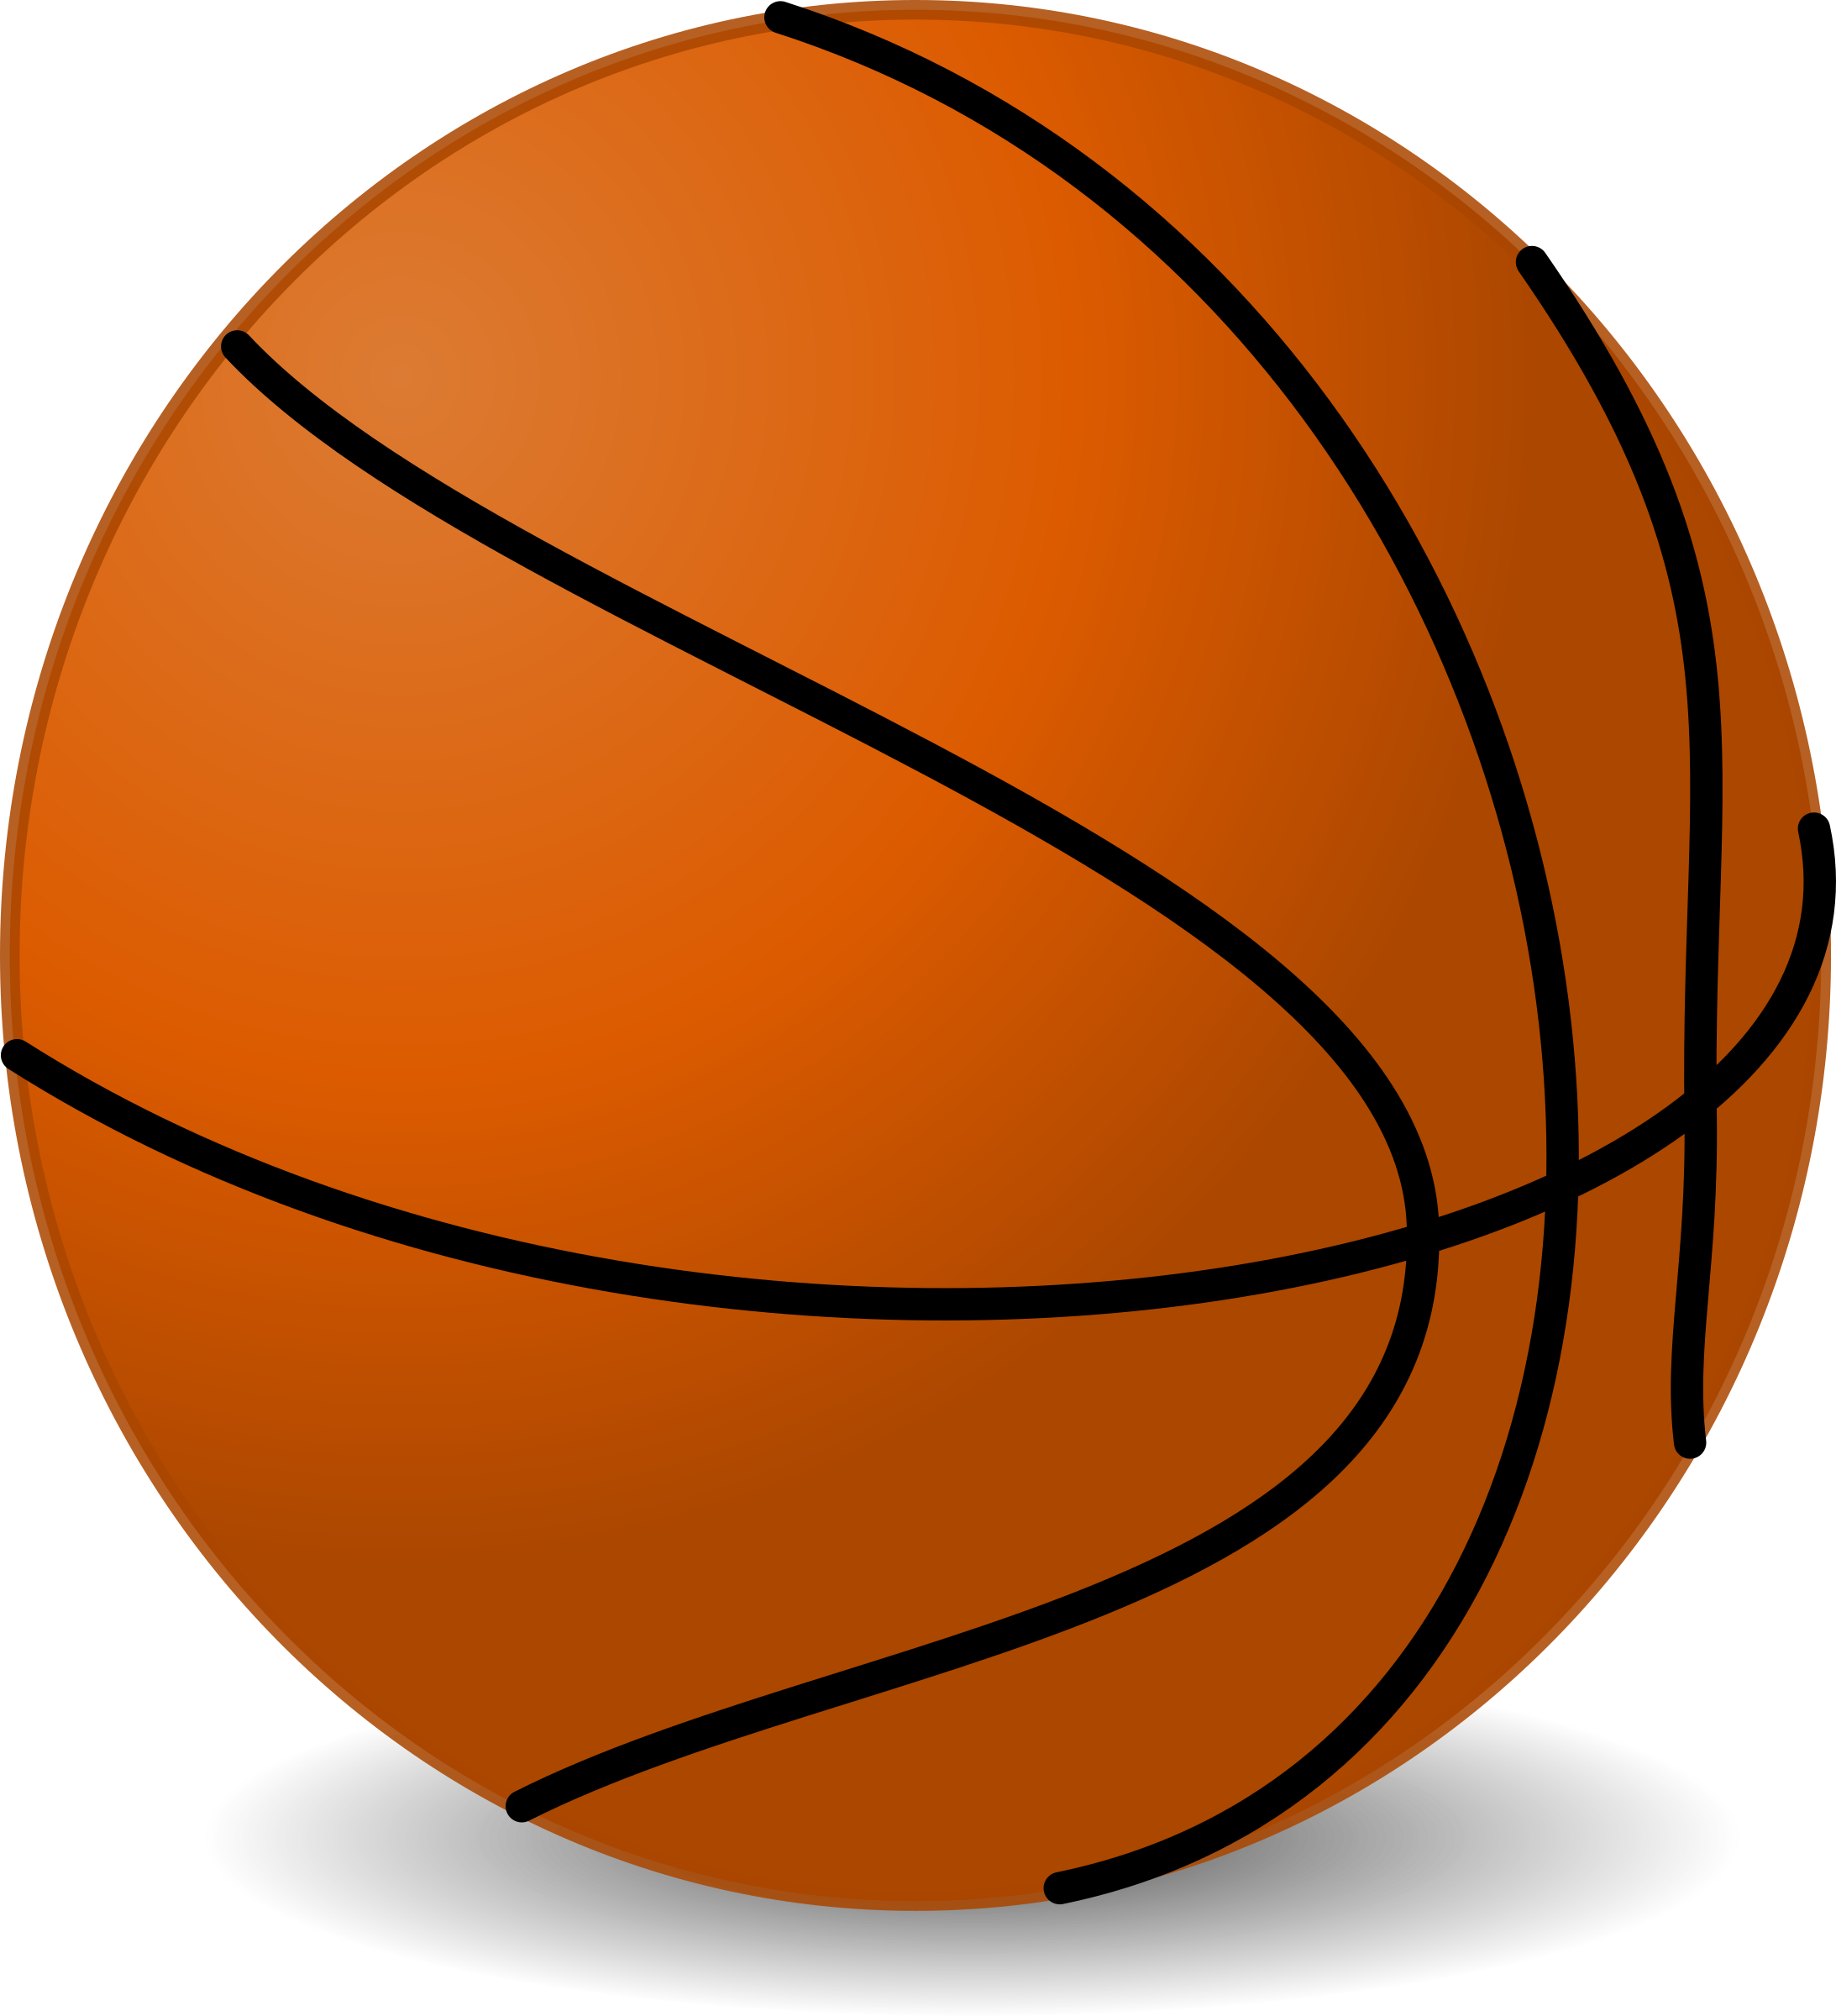 Cartoon basketball clipart picture free download Clipart - basketball picture free download